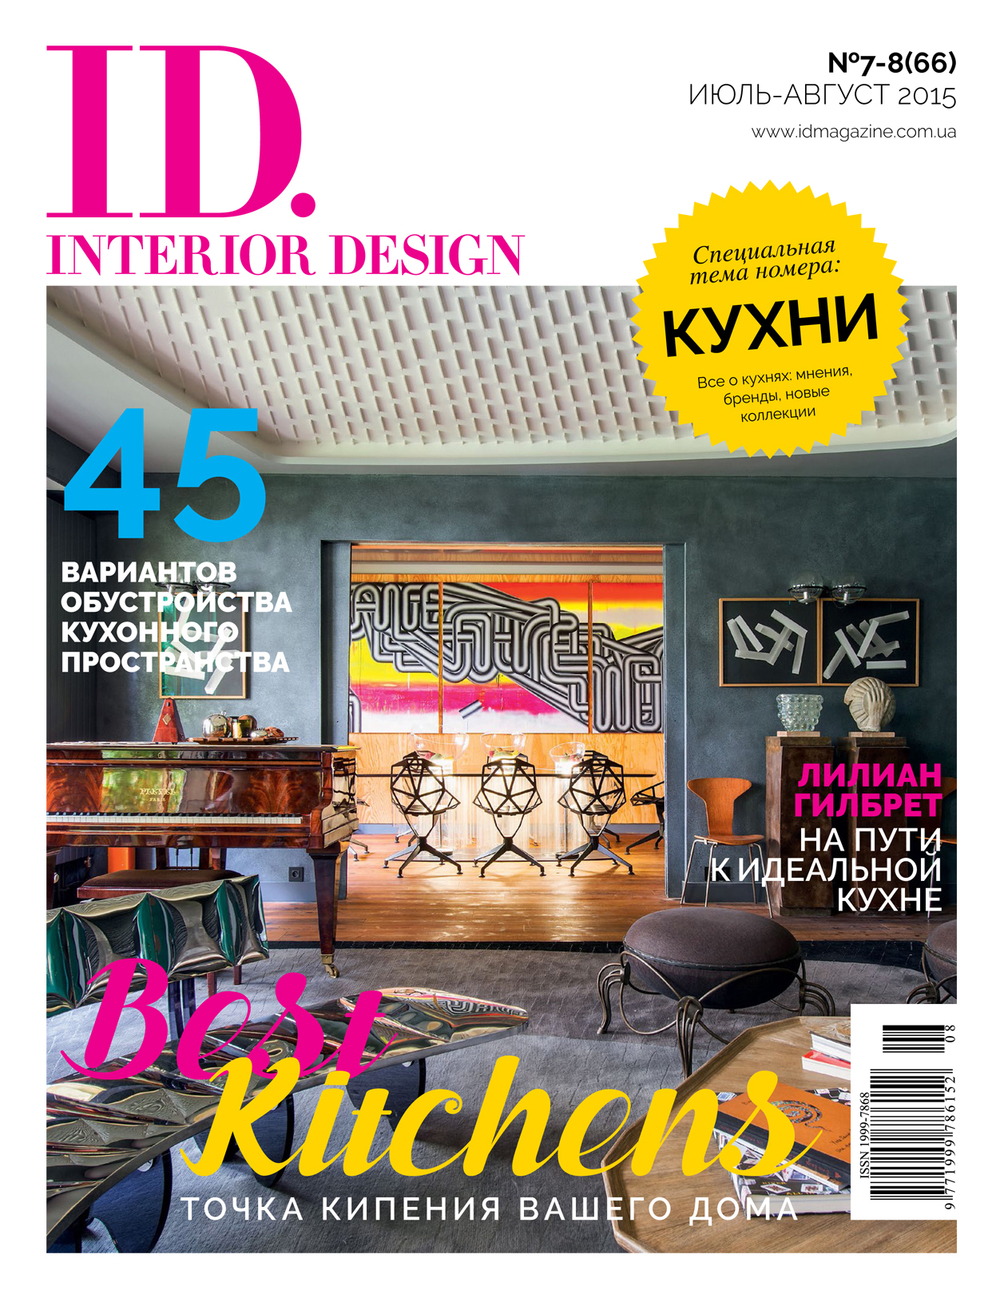 magazines best publications living at use and your popular find most in interior for design every room january practical ideas home s house januarys today amazon ways beautiful to stylish satisfies selling passion according updating news great daily